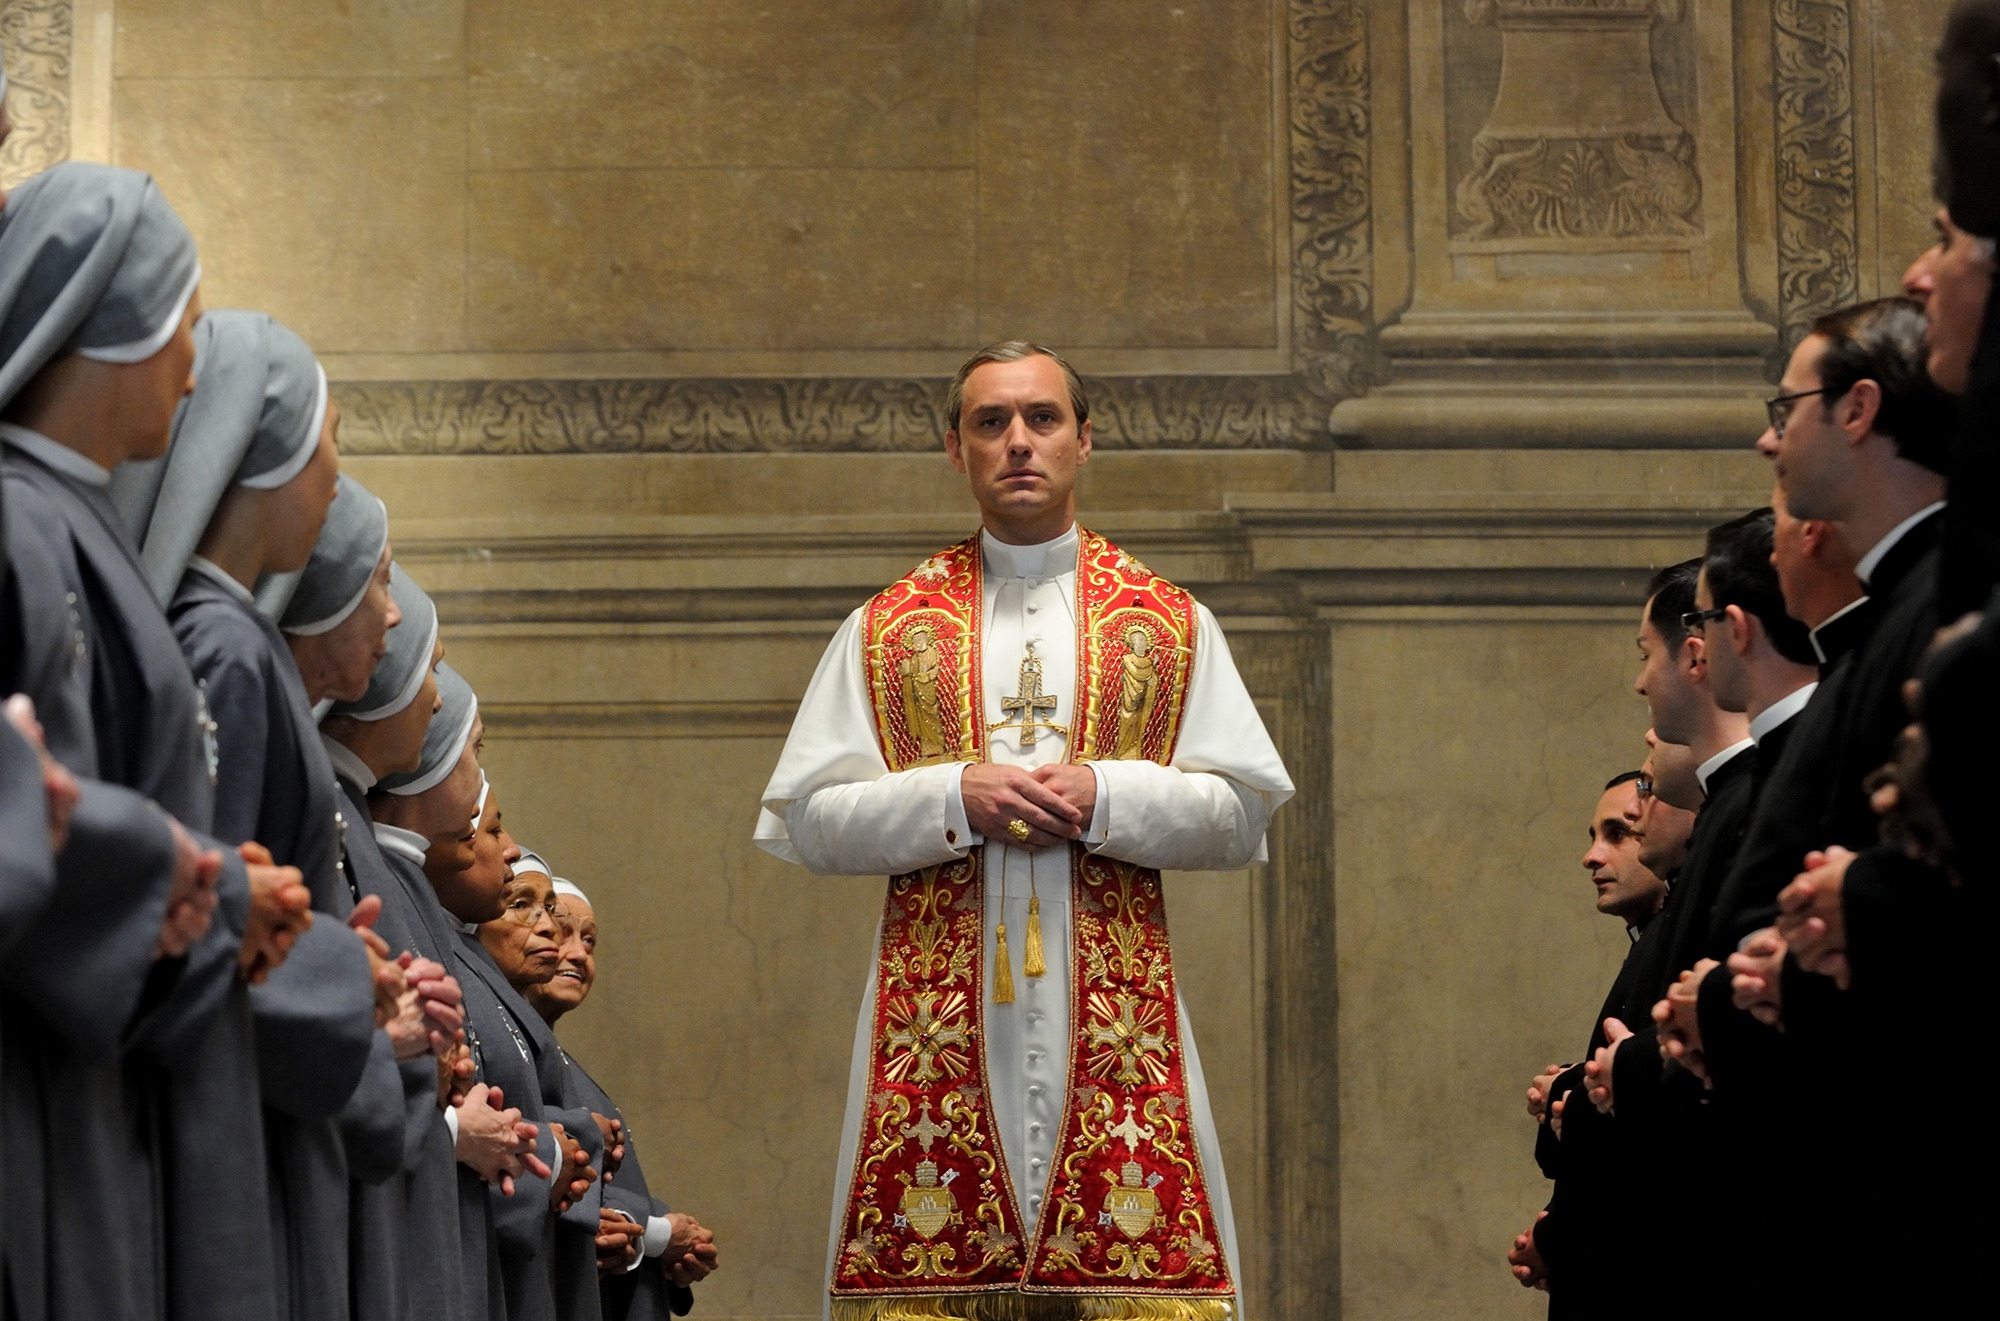 The Young Pope © Canal plus